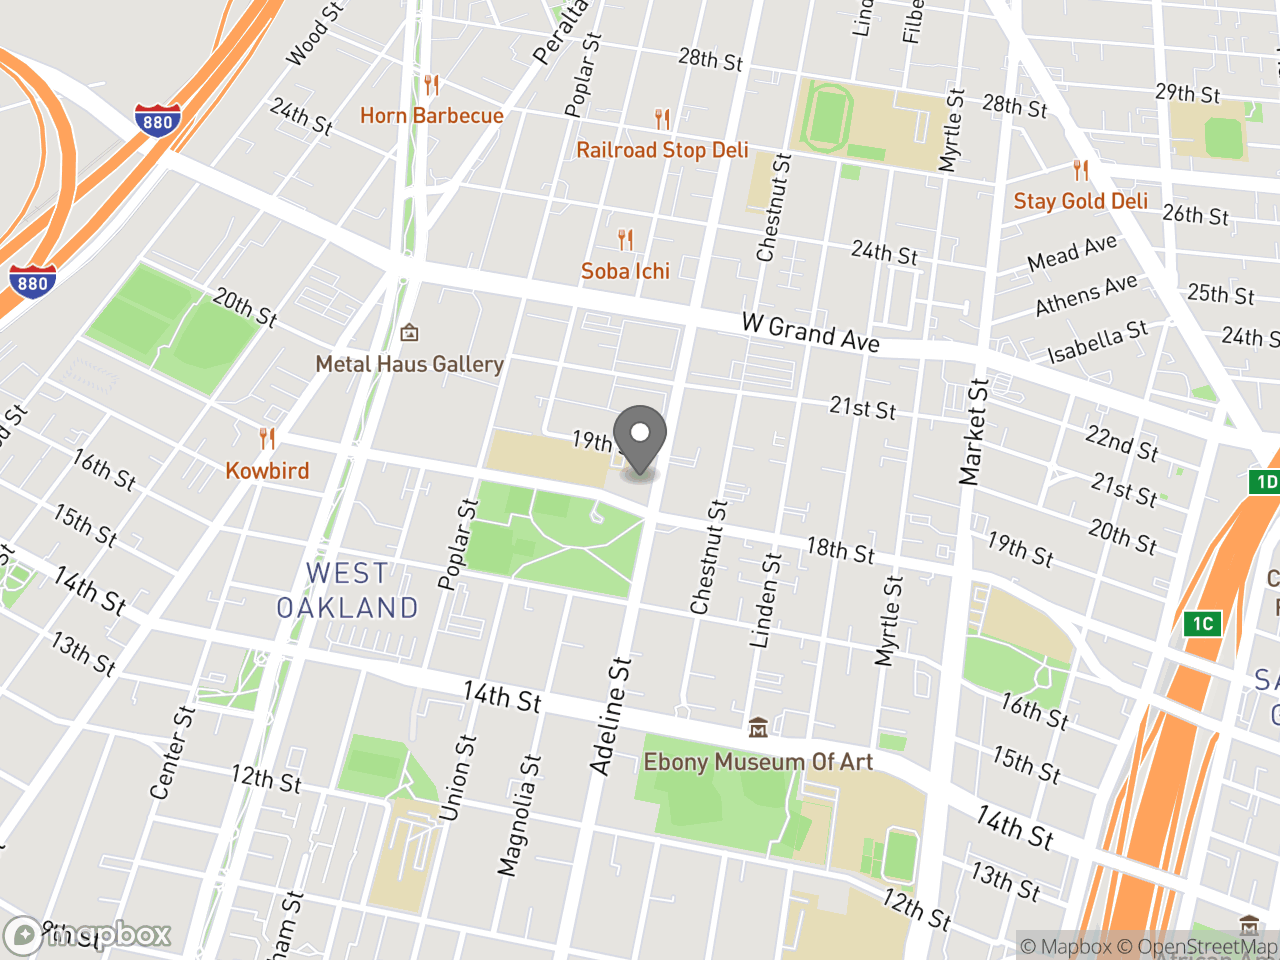 Map location for West Oakland Job Resource Center, located at 1801 Adeline St in Oakland, CA 94607